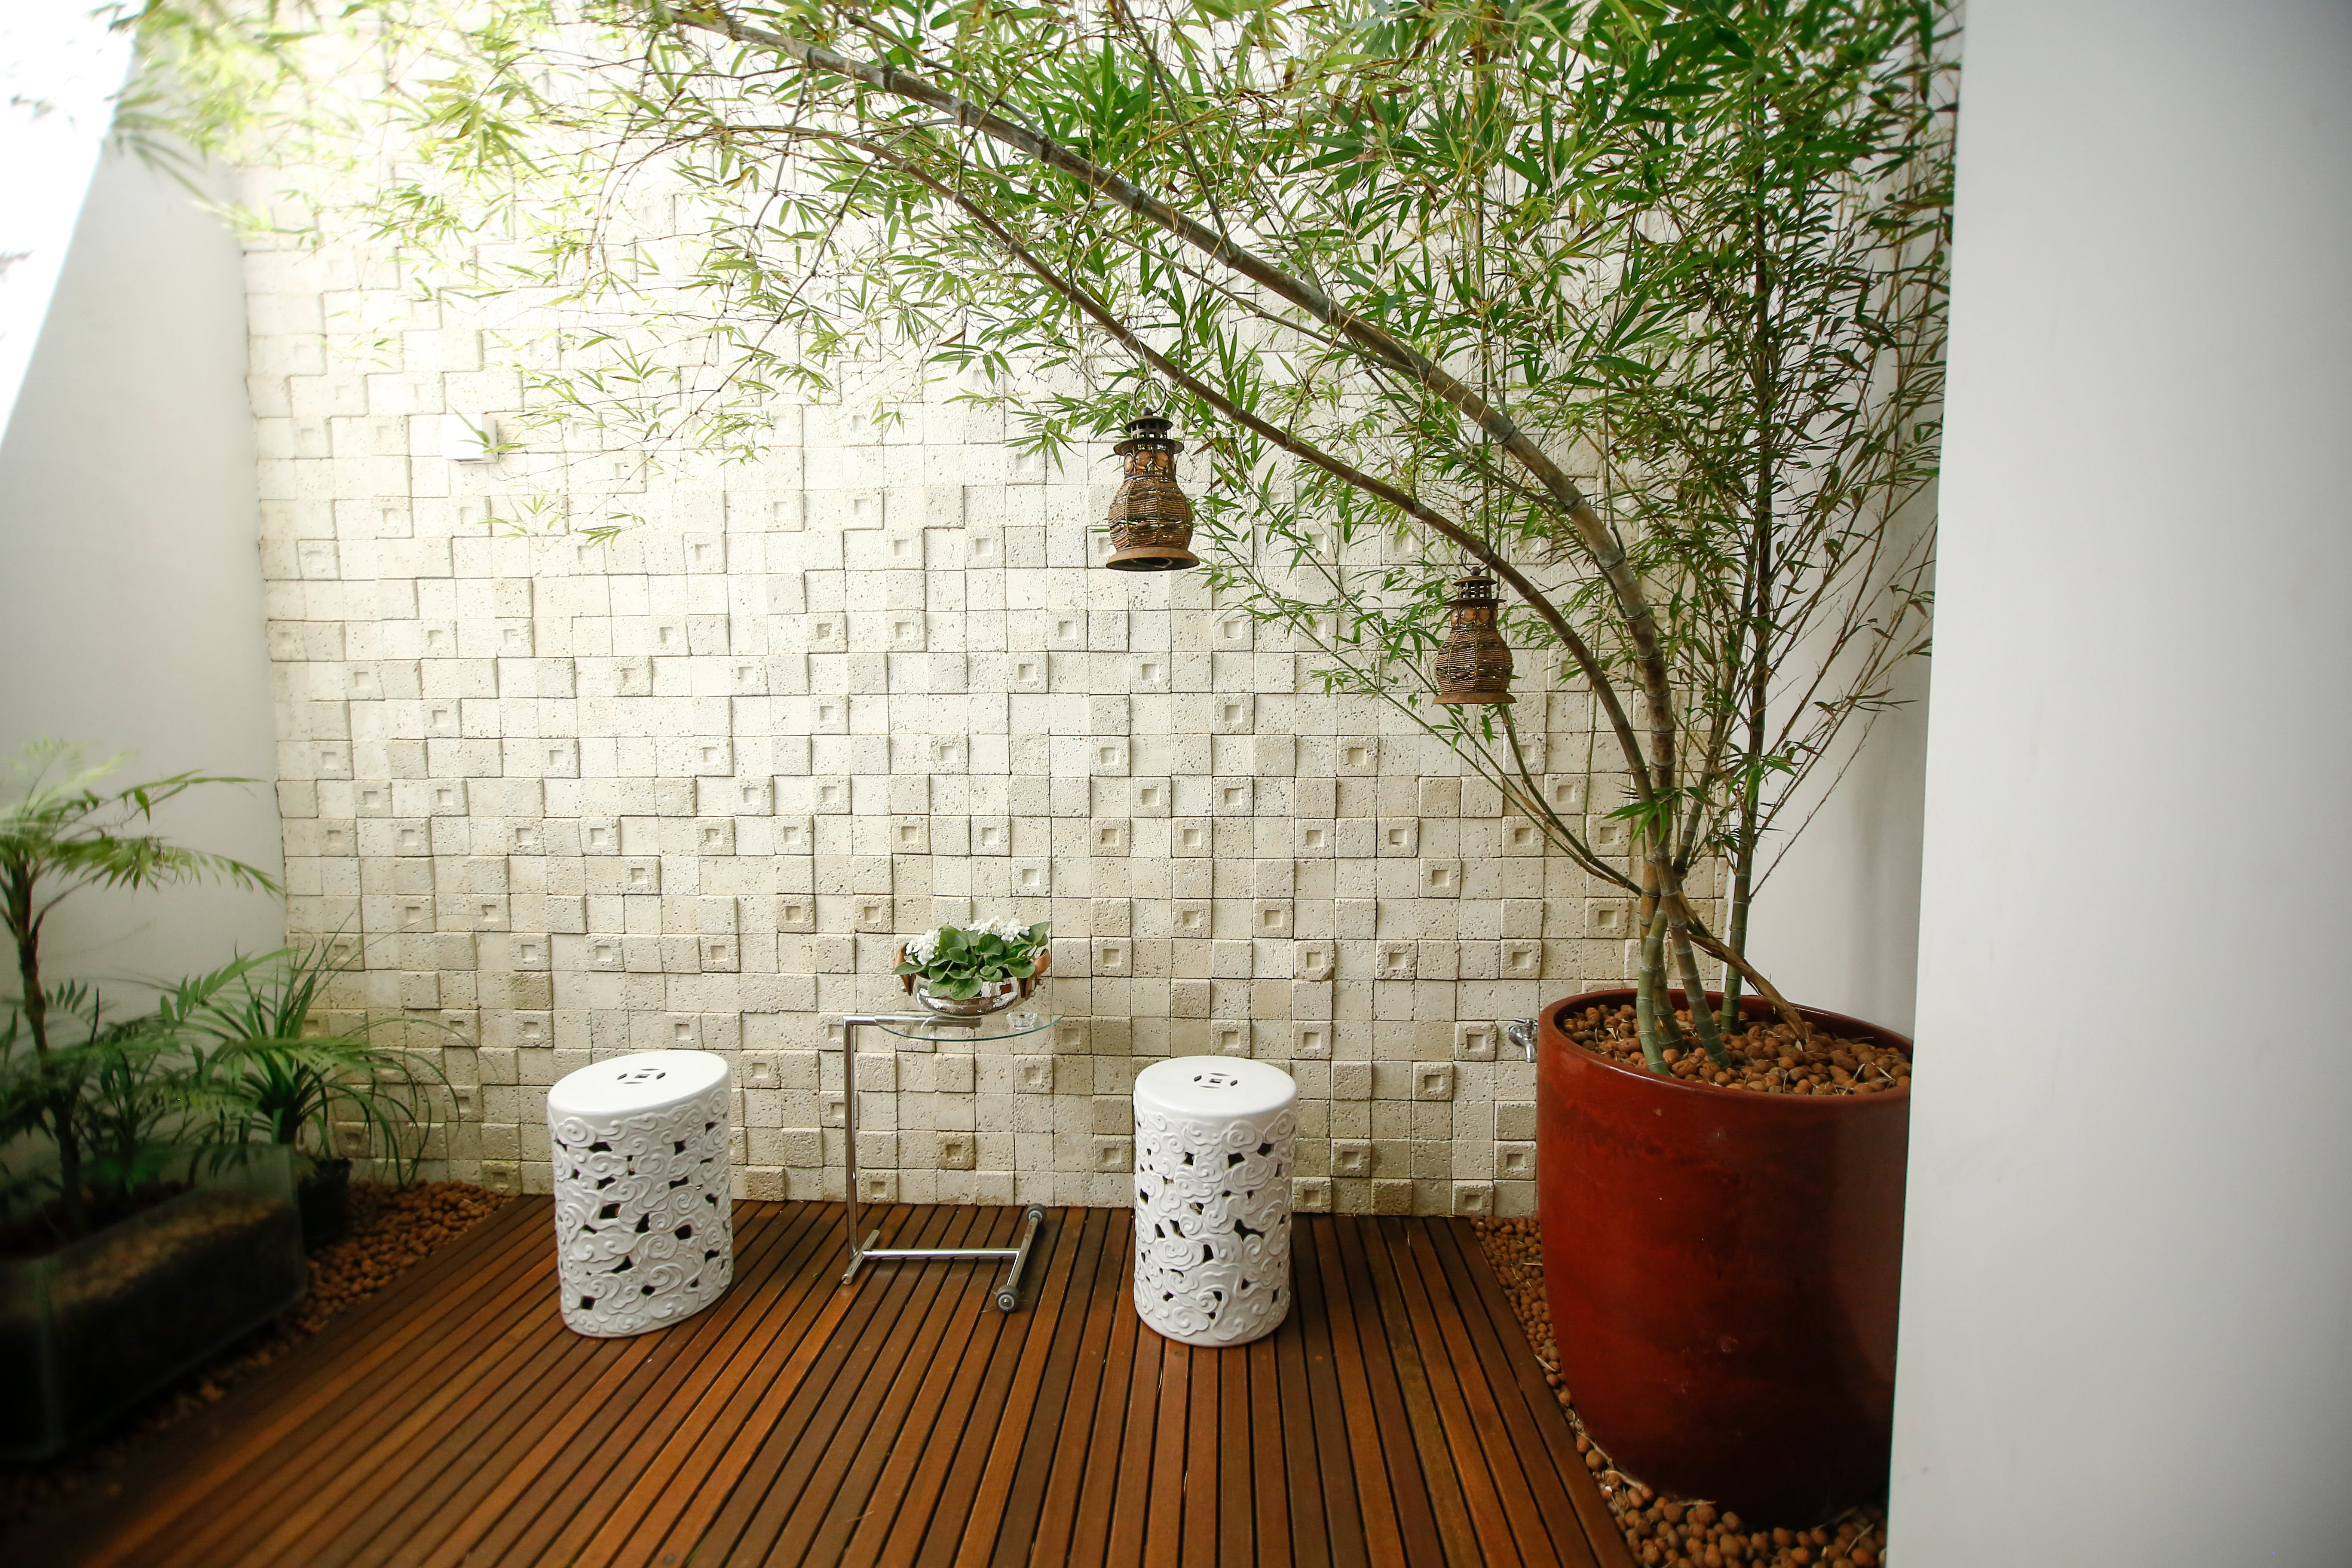 Two White Concrete Columns Beside Concrete Wall and Green Plants